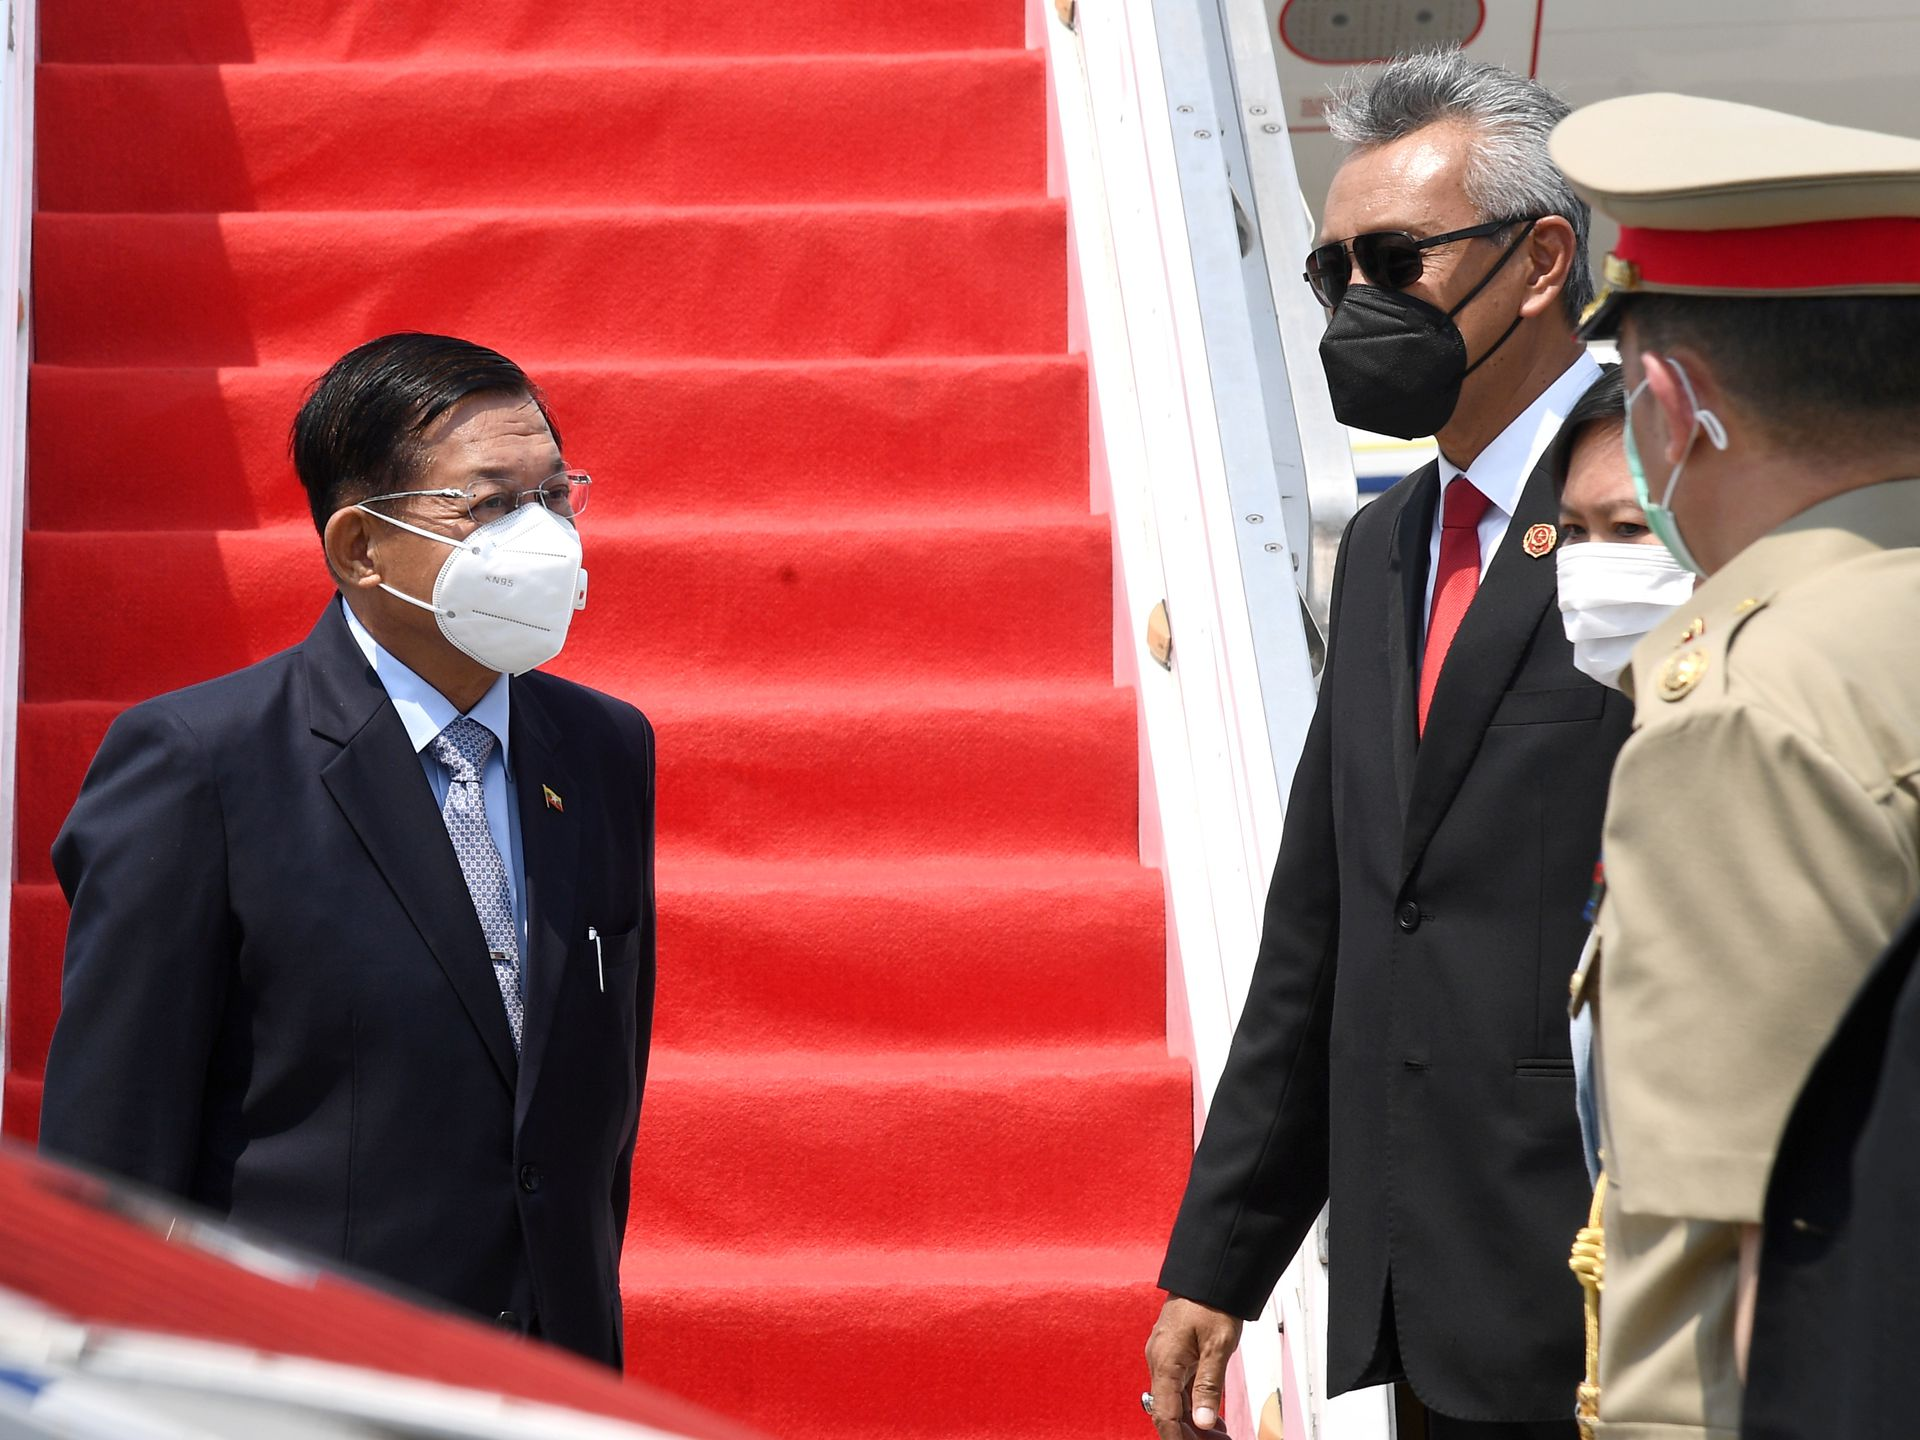 Min Aung Hlaing (L), head of the Myanmar military, arrives in Jakarta, Indonesia for the ASEAN Leaders Meeting on April 24, 2021. Photo by Reuters.